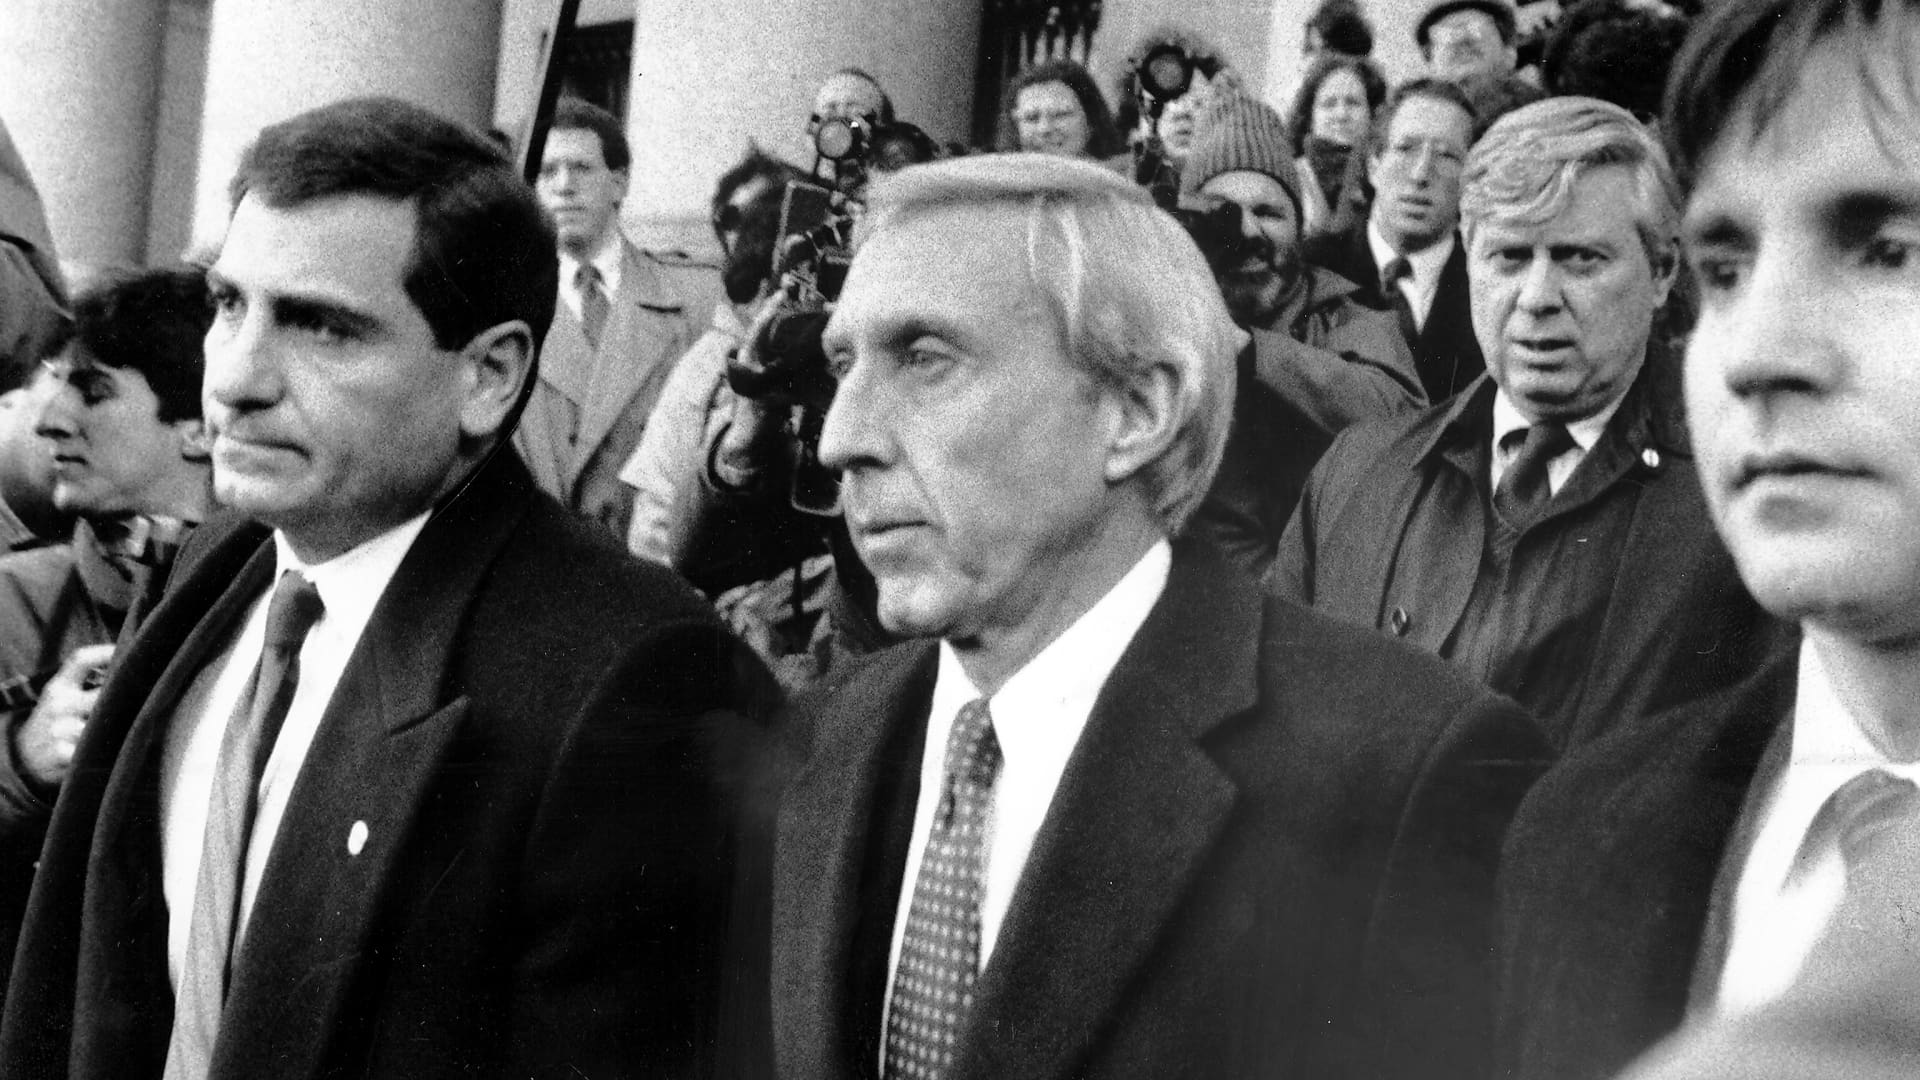 Ivan Boesky leaves Federal Court after sentencing in 1987.